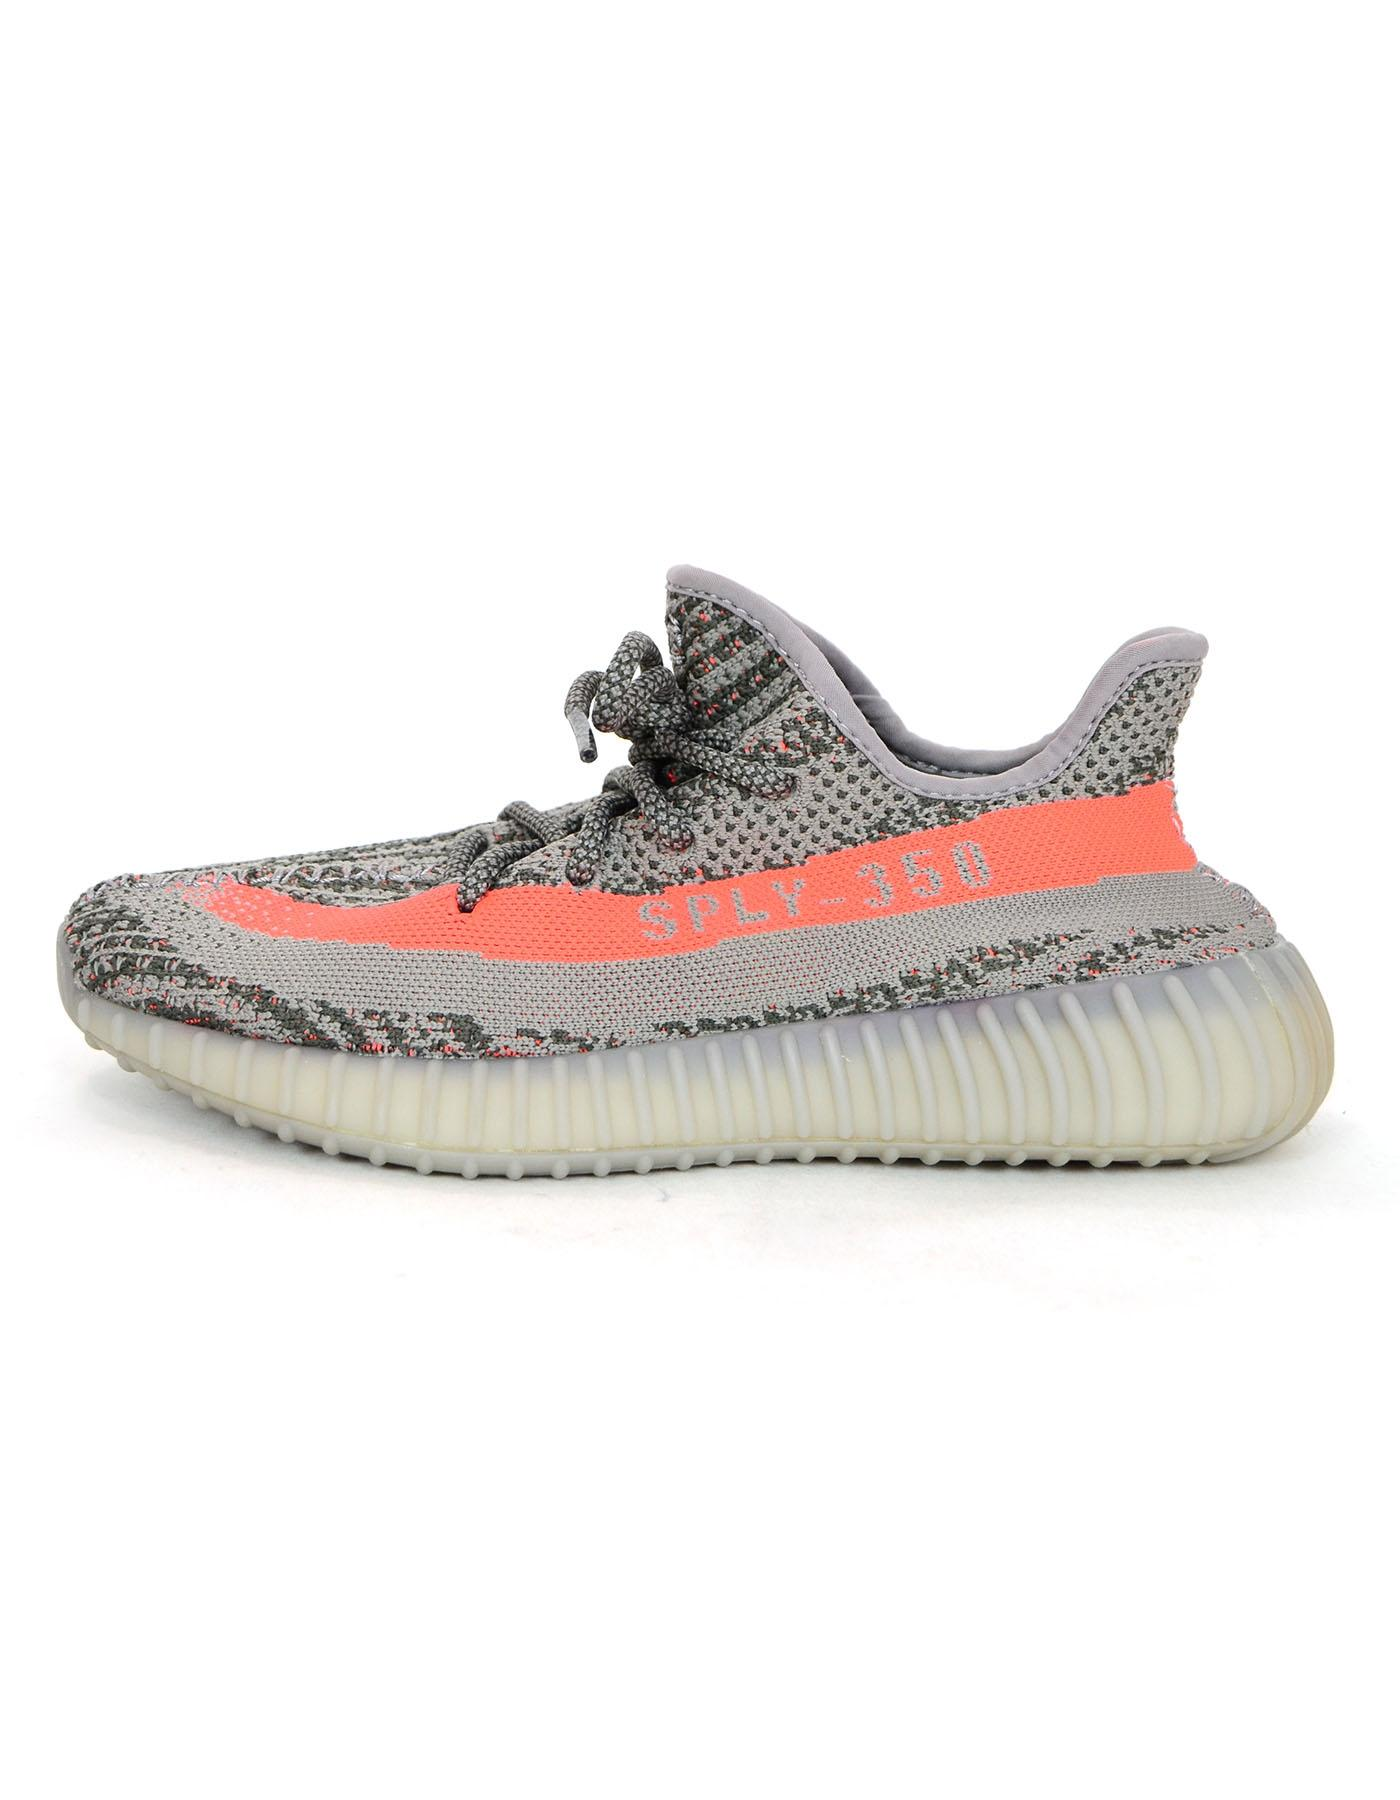 219c9bf047c good adidas yeezy boost 350 pirate black us 6 eu 38 5 bb 5350 2.0 d3559  df5e7  hot adidas x yeezy sneakers new grey athletic b4745 22d0b